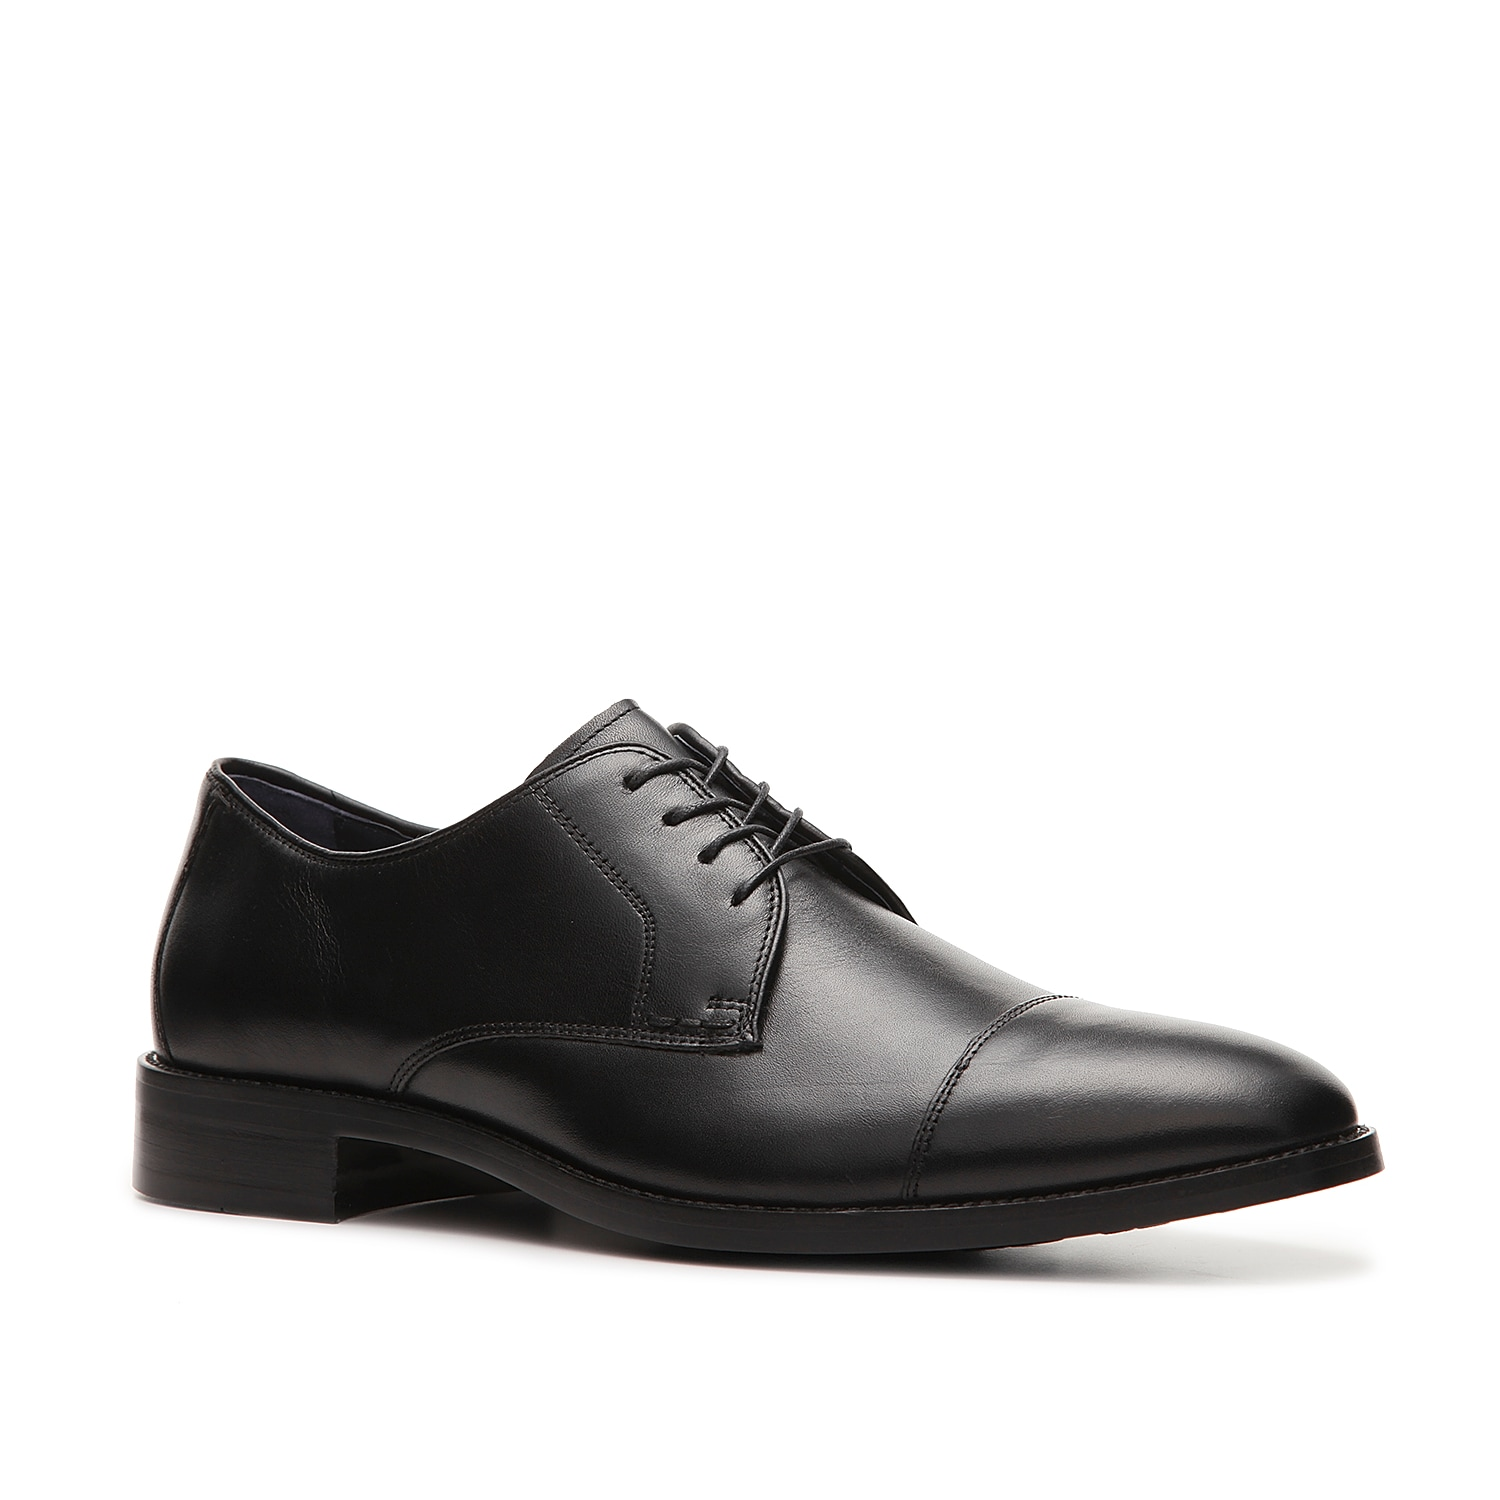 A true classic that will never go out of style is what you get with the Lenox Hill oxford from Cole Haan! This cap toe leather oxford is ready for the boardroom or a night out on the town and will keep you comfortable with Grand Osâ® technology which features a dual compound cushioning system!